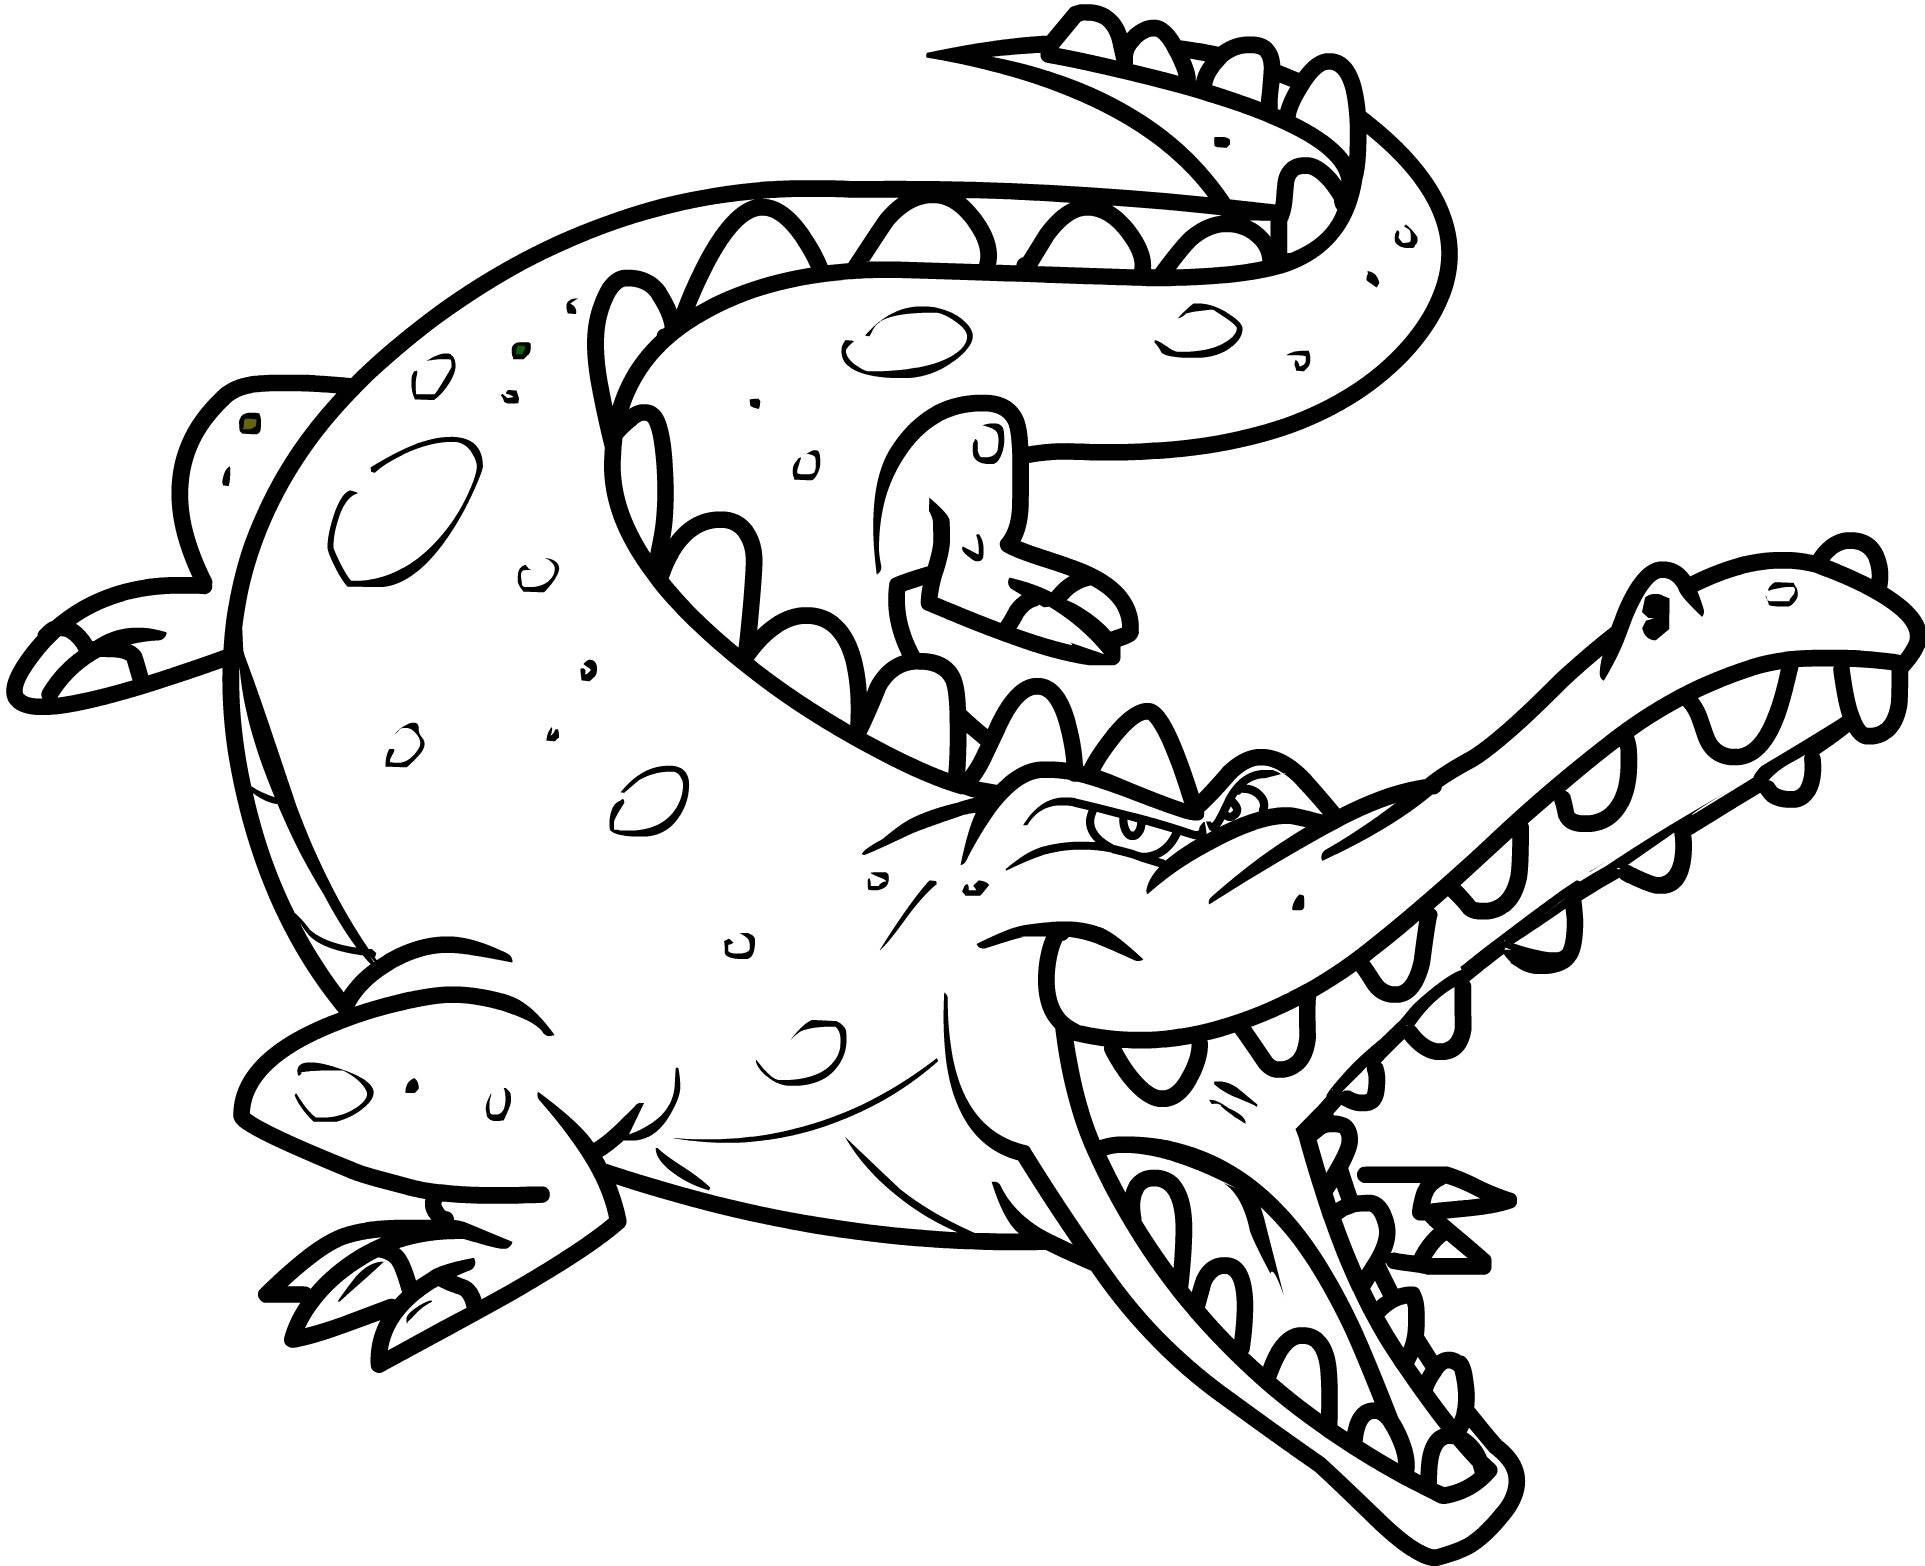 Free Printable Crocodile Coloring Pages For Kids Coloring Pages